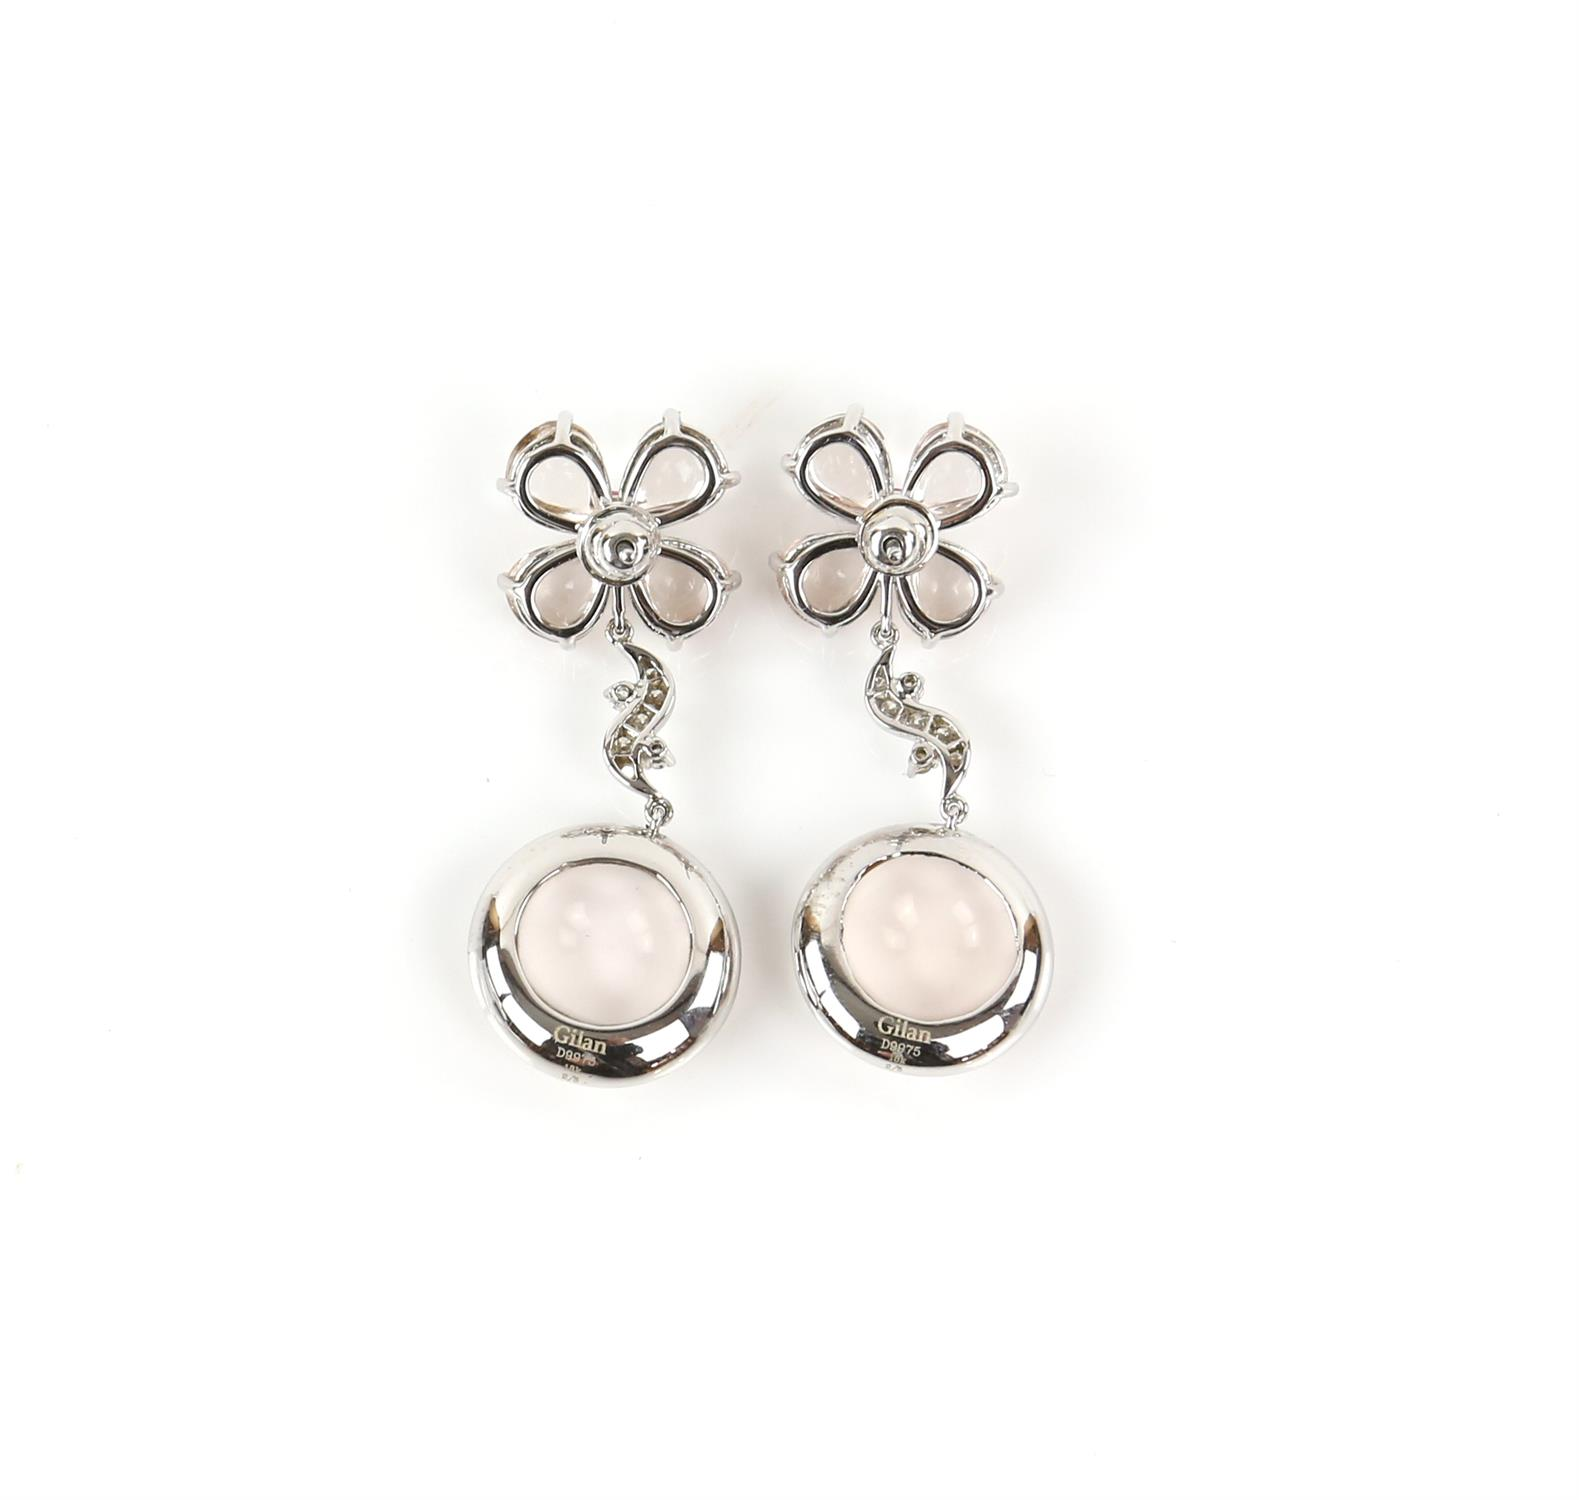 Pair of Gilan drop earrings, designed as a floral motif with a central synthetic pink spinel, - Image 3 of 5